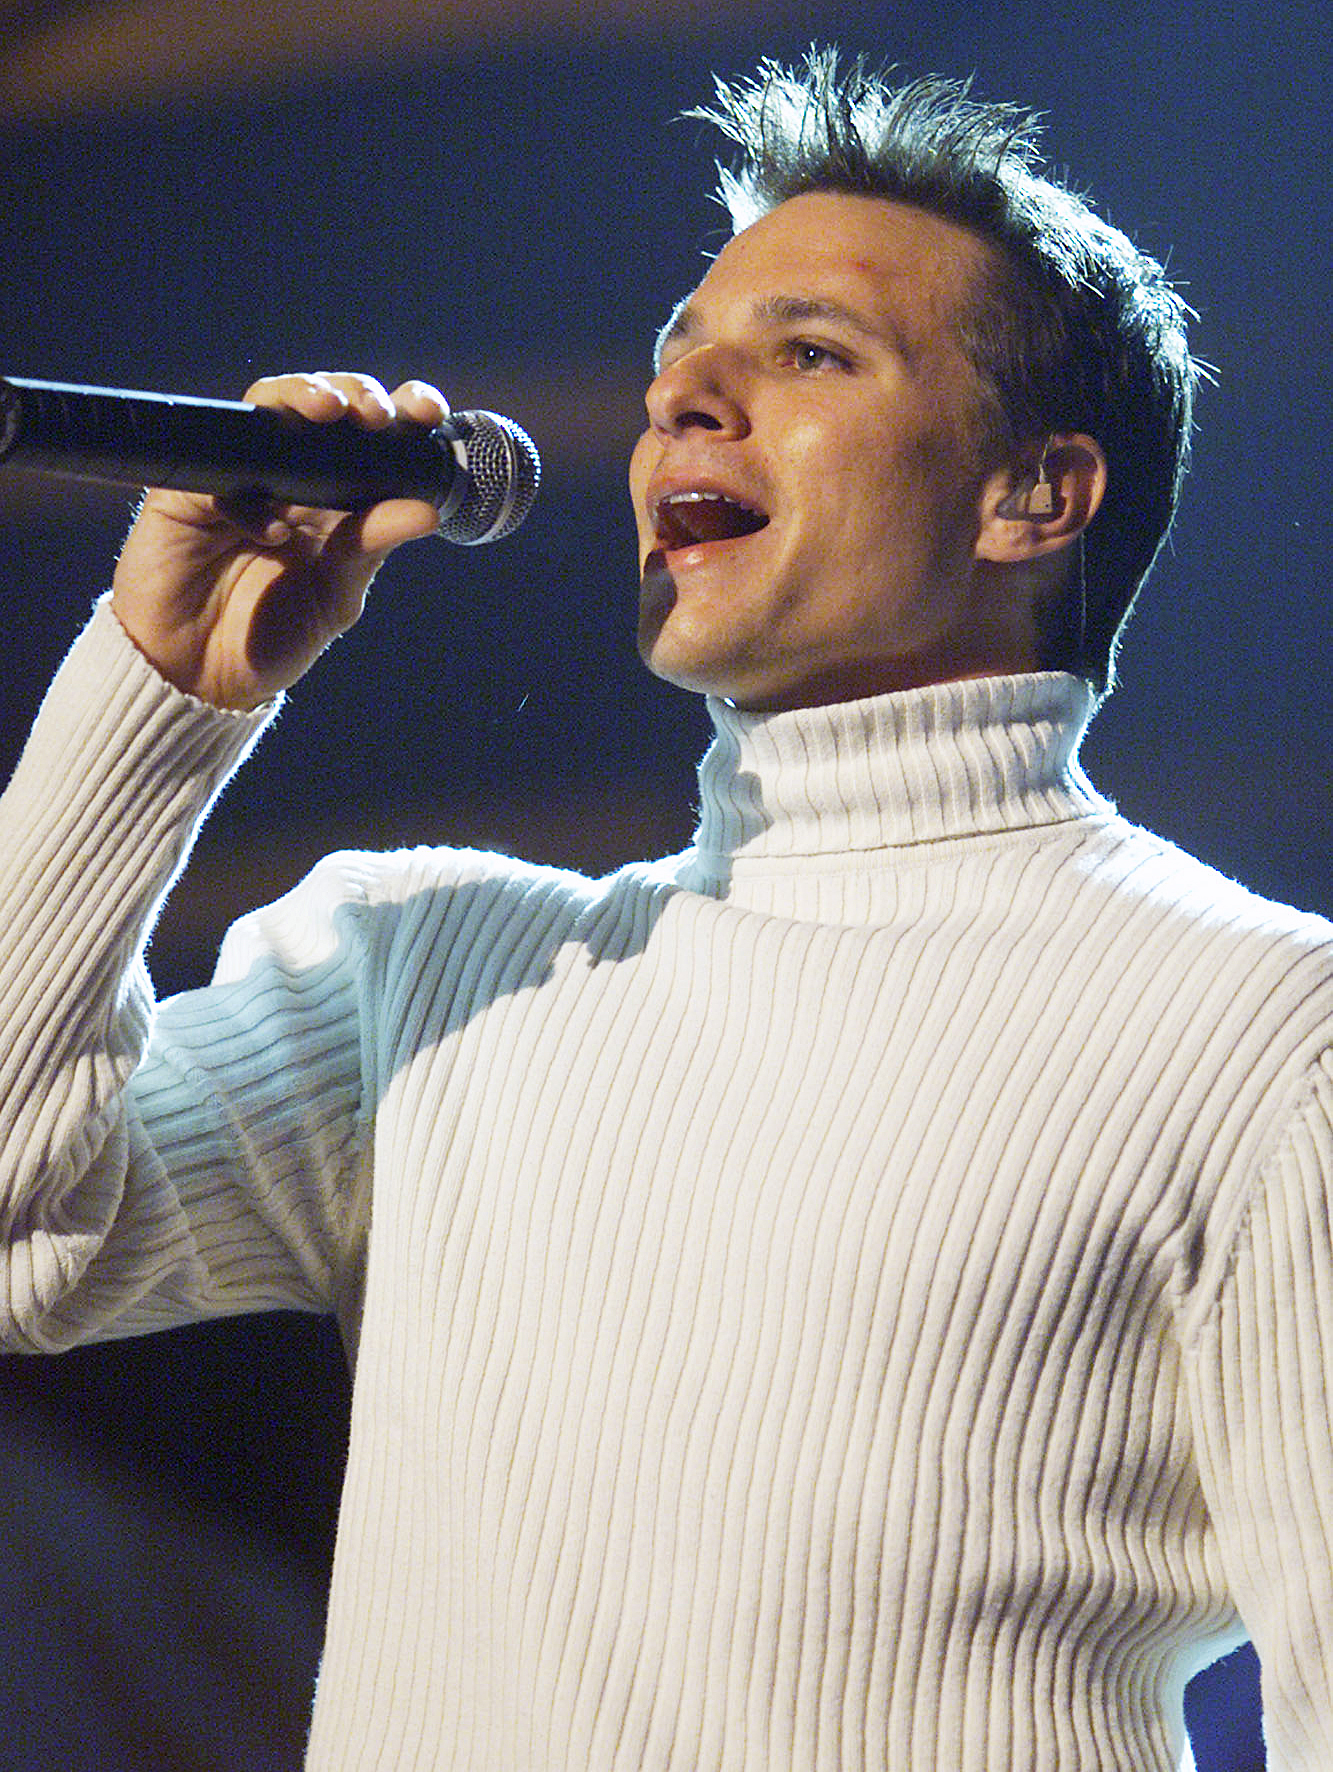 Drew Lachey 98 Degrees 2000 Radio Music Awards